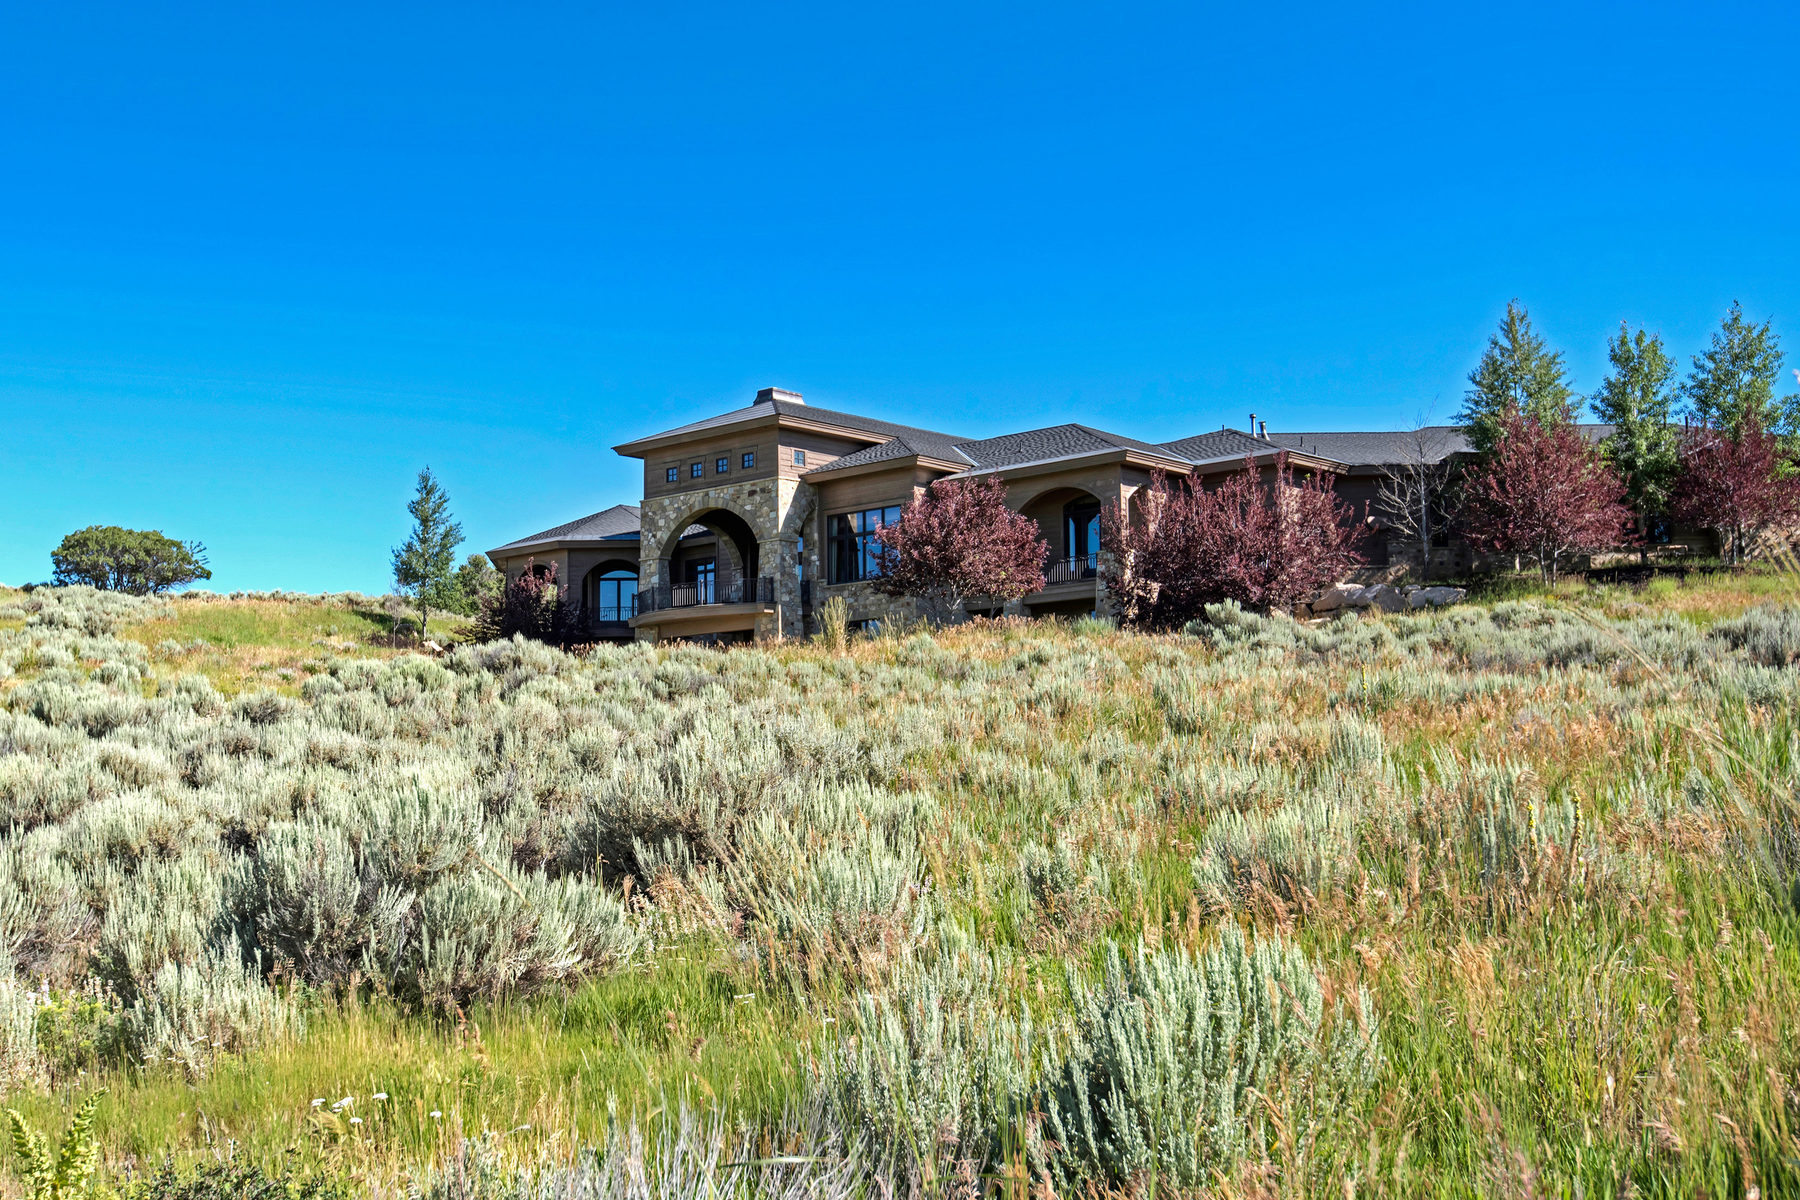 Maison unifamiliale pour l Vente à Amazing Location & Views in Promontory 7501 N Promontory Ranch Rd Park City, Utah, 84098 États-Unis